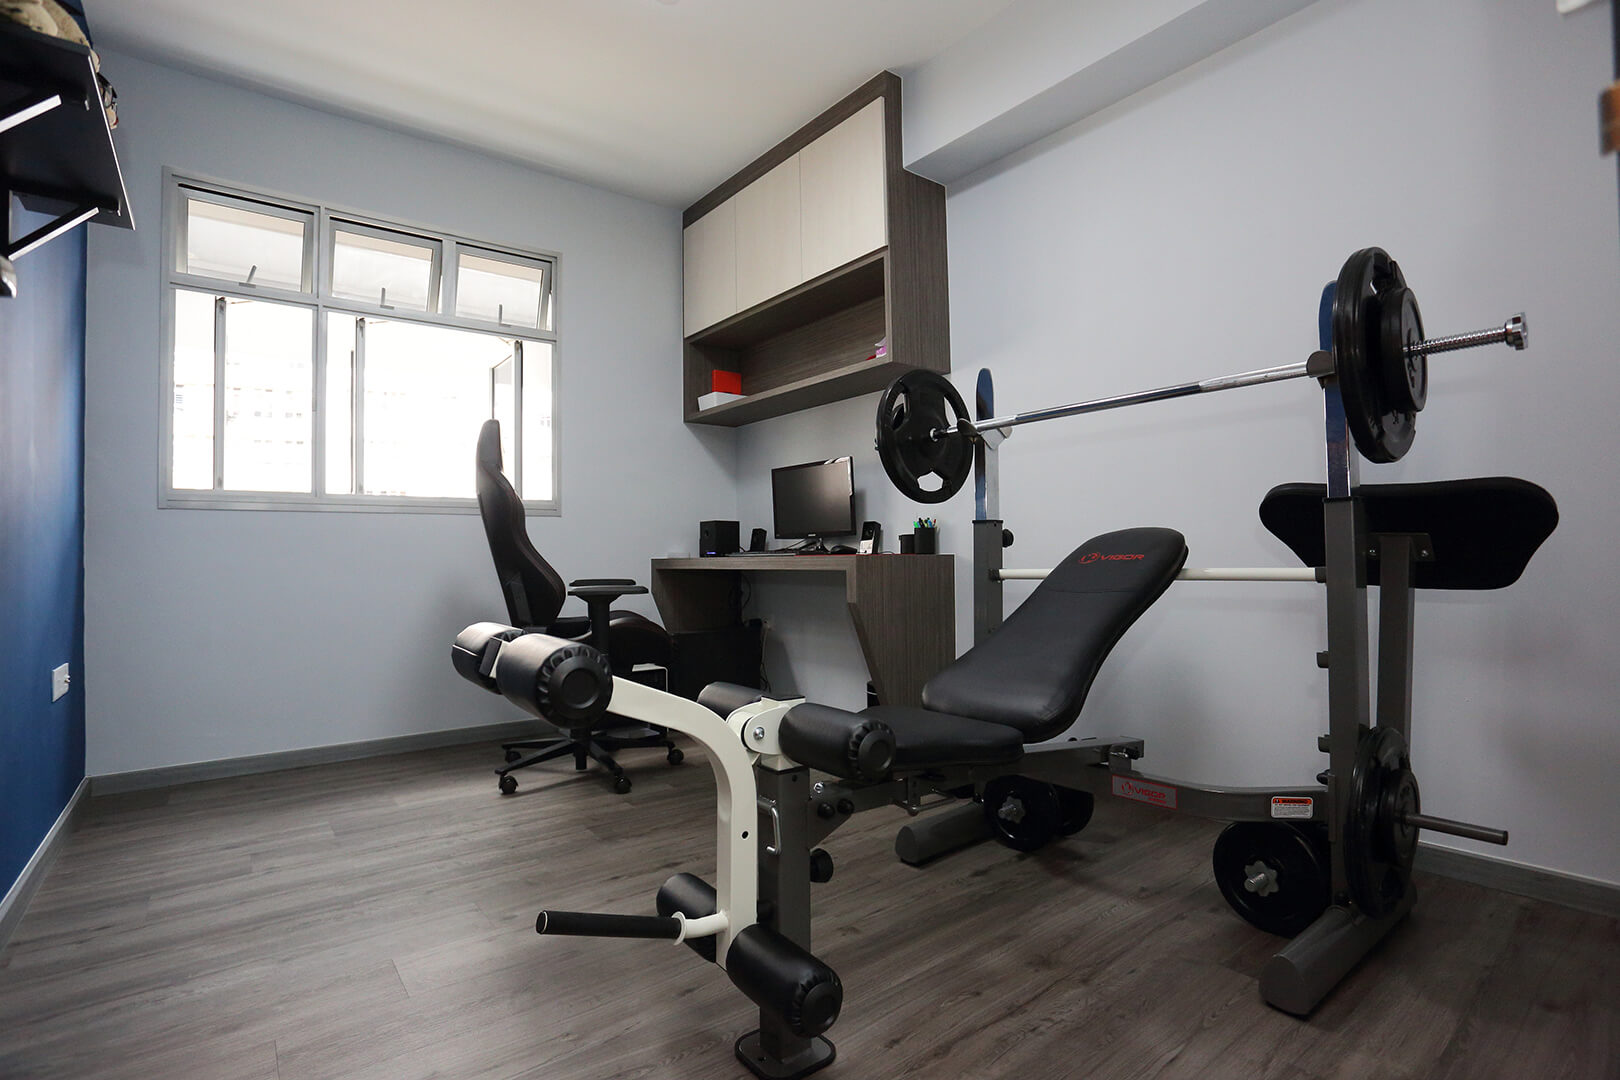 Minimalist Home Interior Design Singapore Room with GYM Equipment